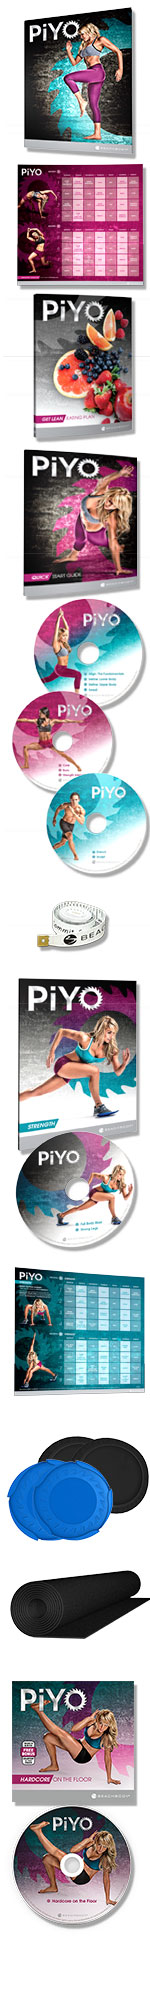 PiYo Deluxe DVD Kit